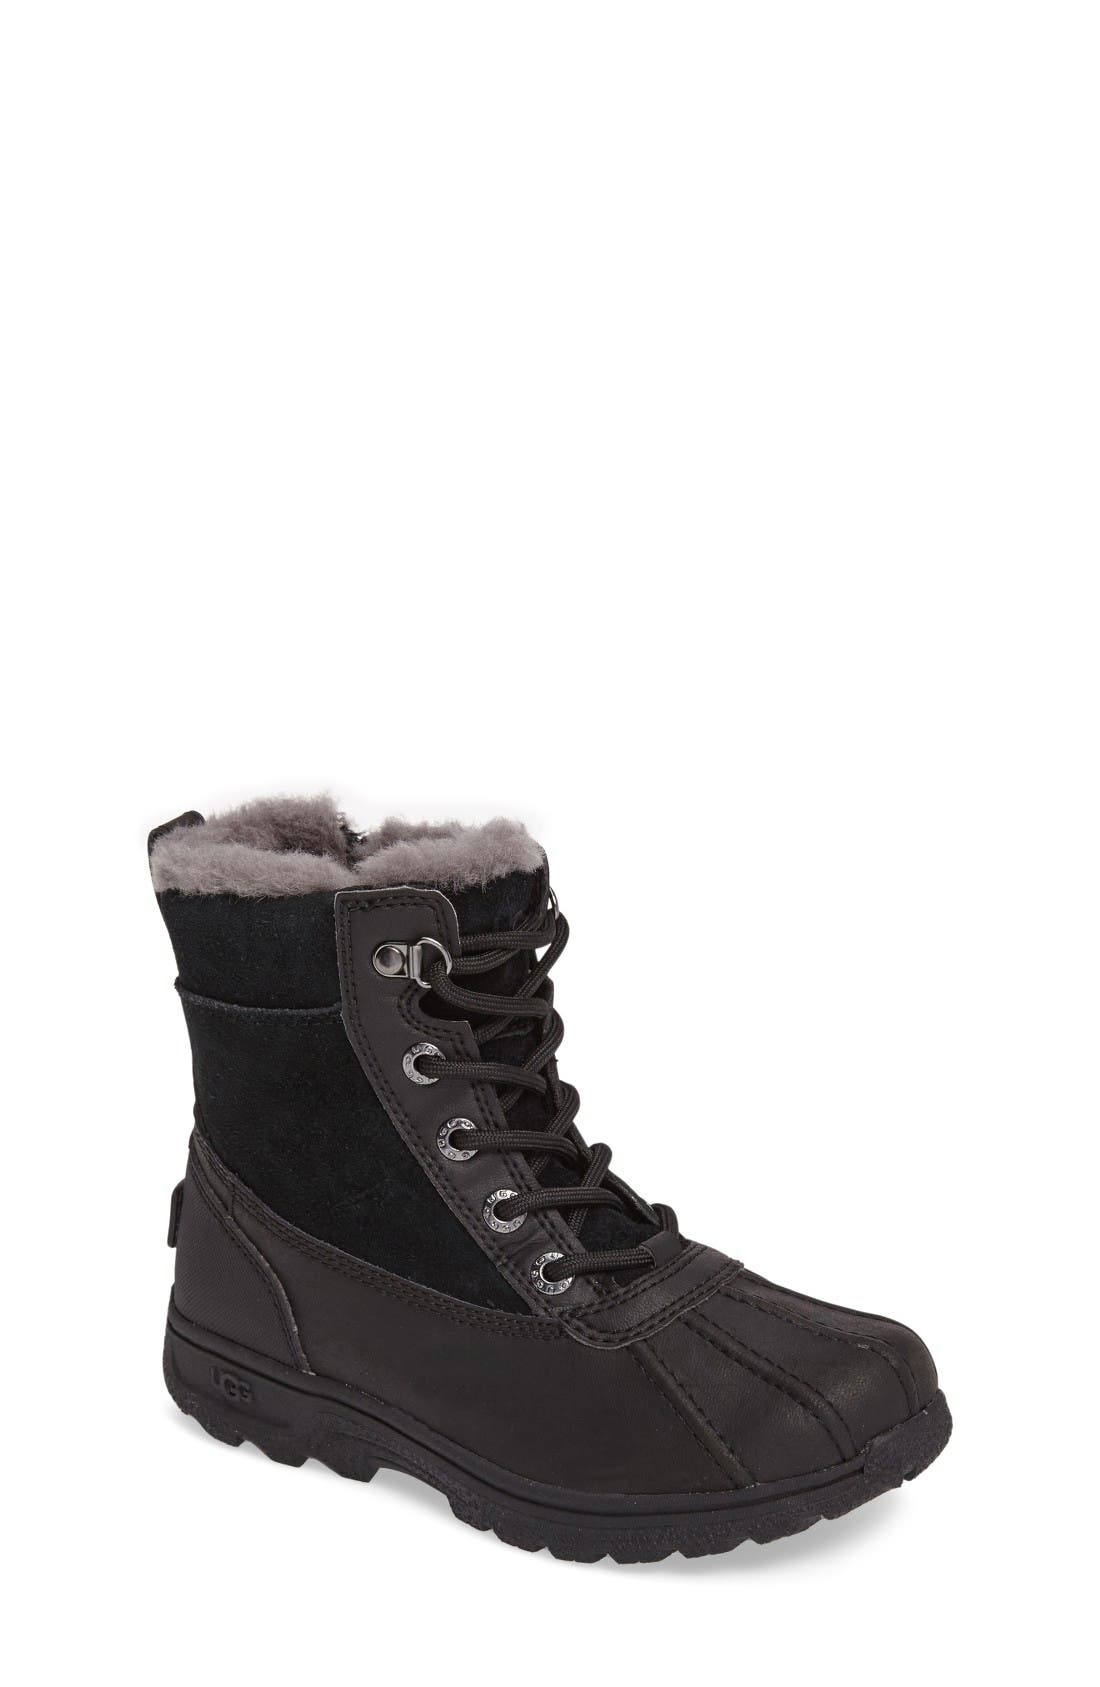 Main Image - UGG® Leggero Boot (Toddler, Little Kid & Big Kid)